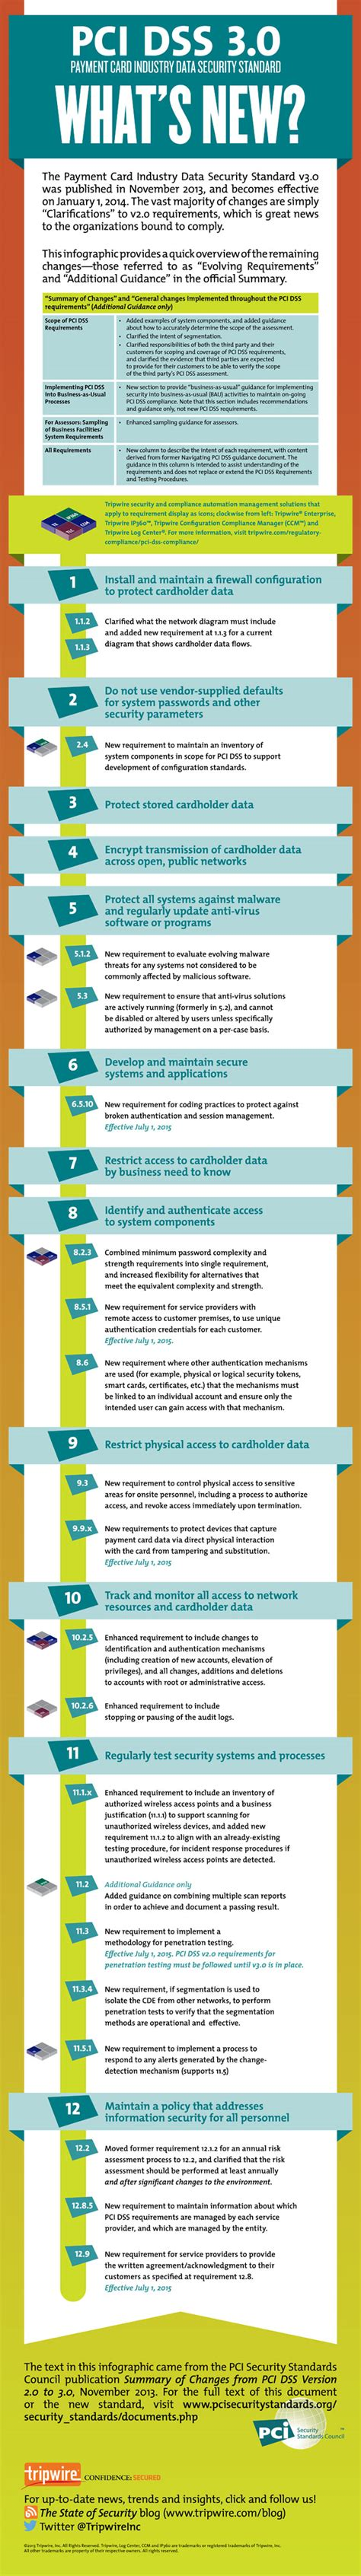 Pci 30  What's New? (infographic)  The State Of Security